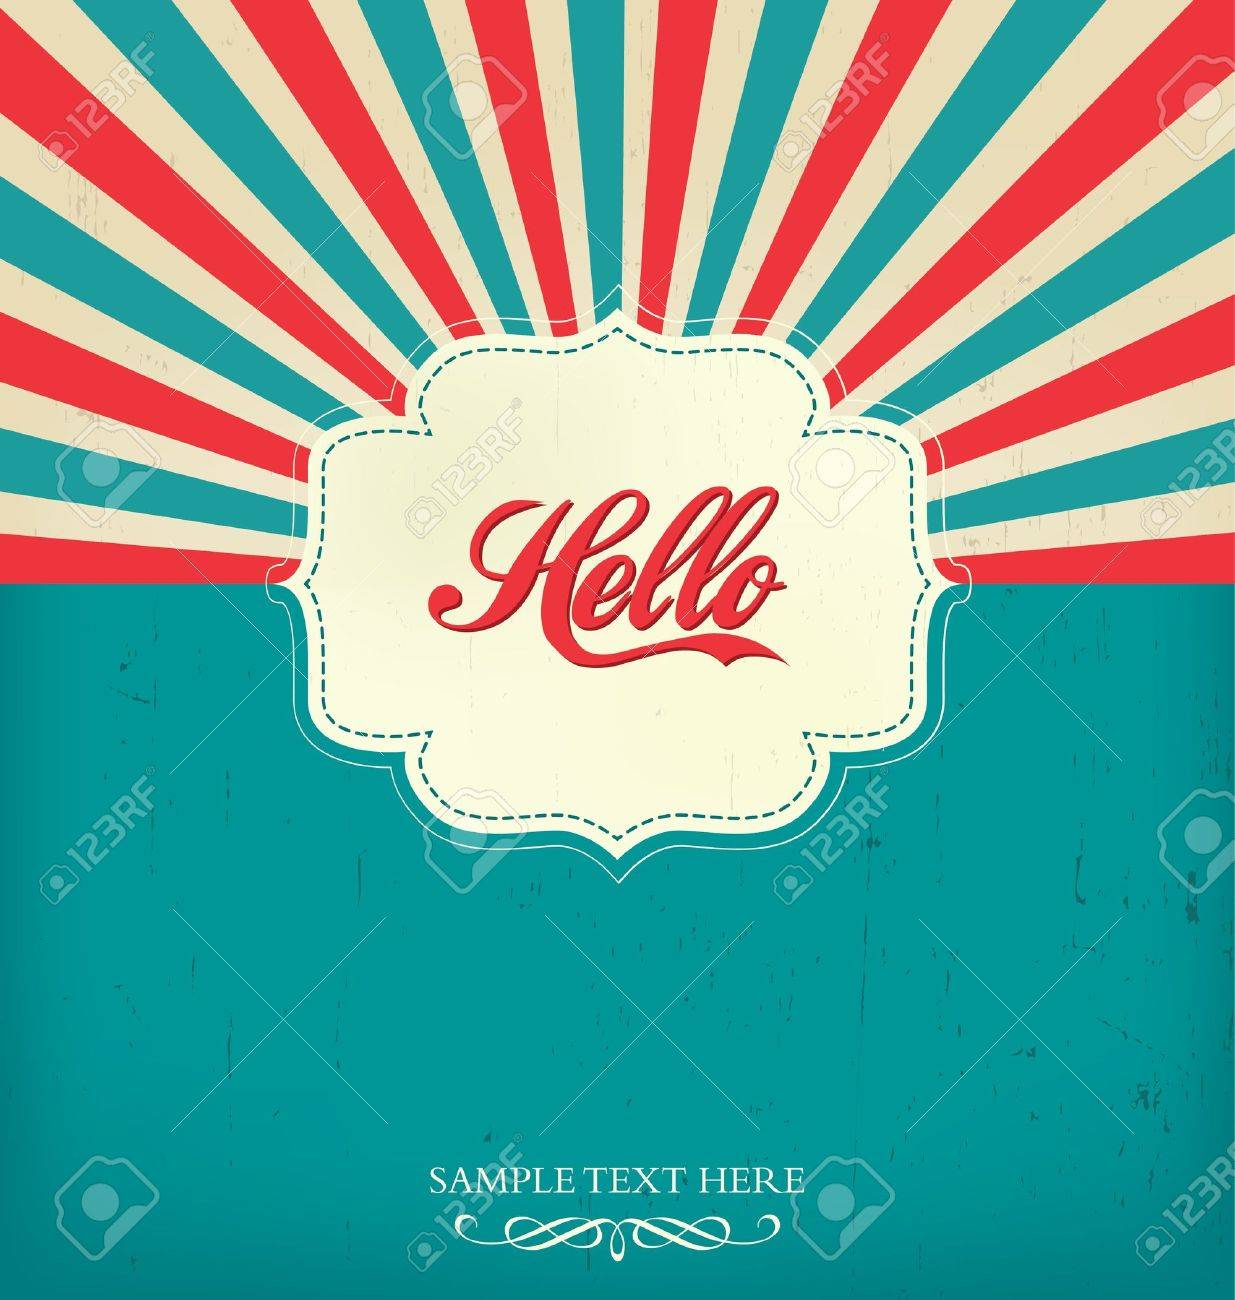 Vintage Design Template Stock Vector - 14553620